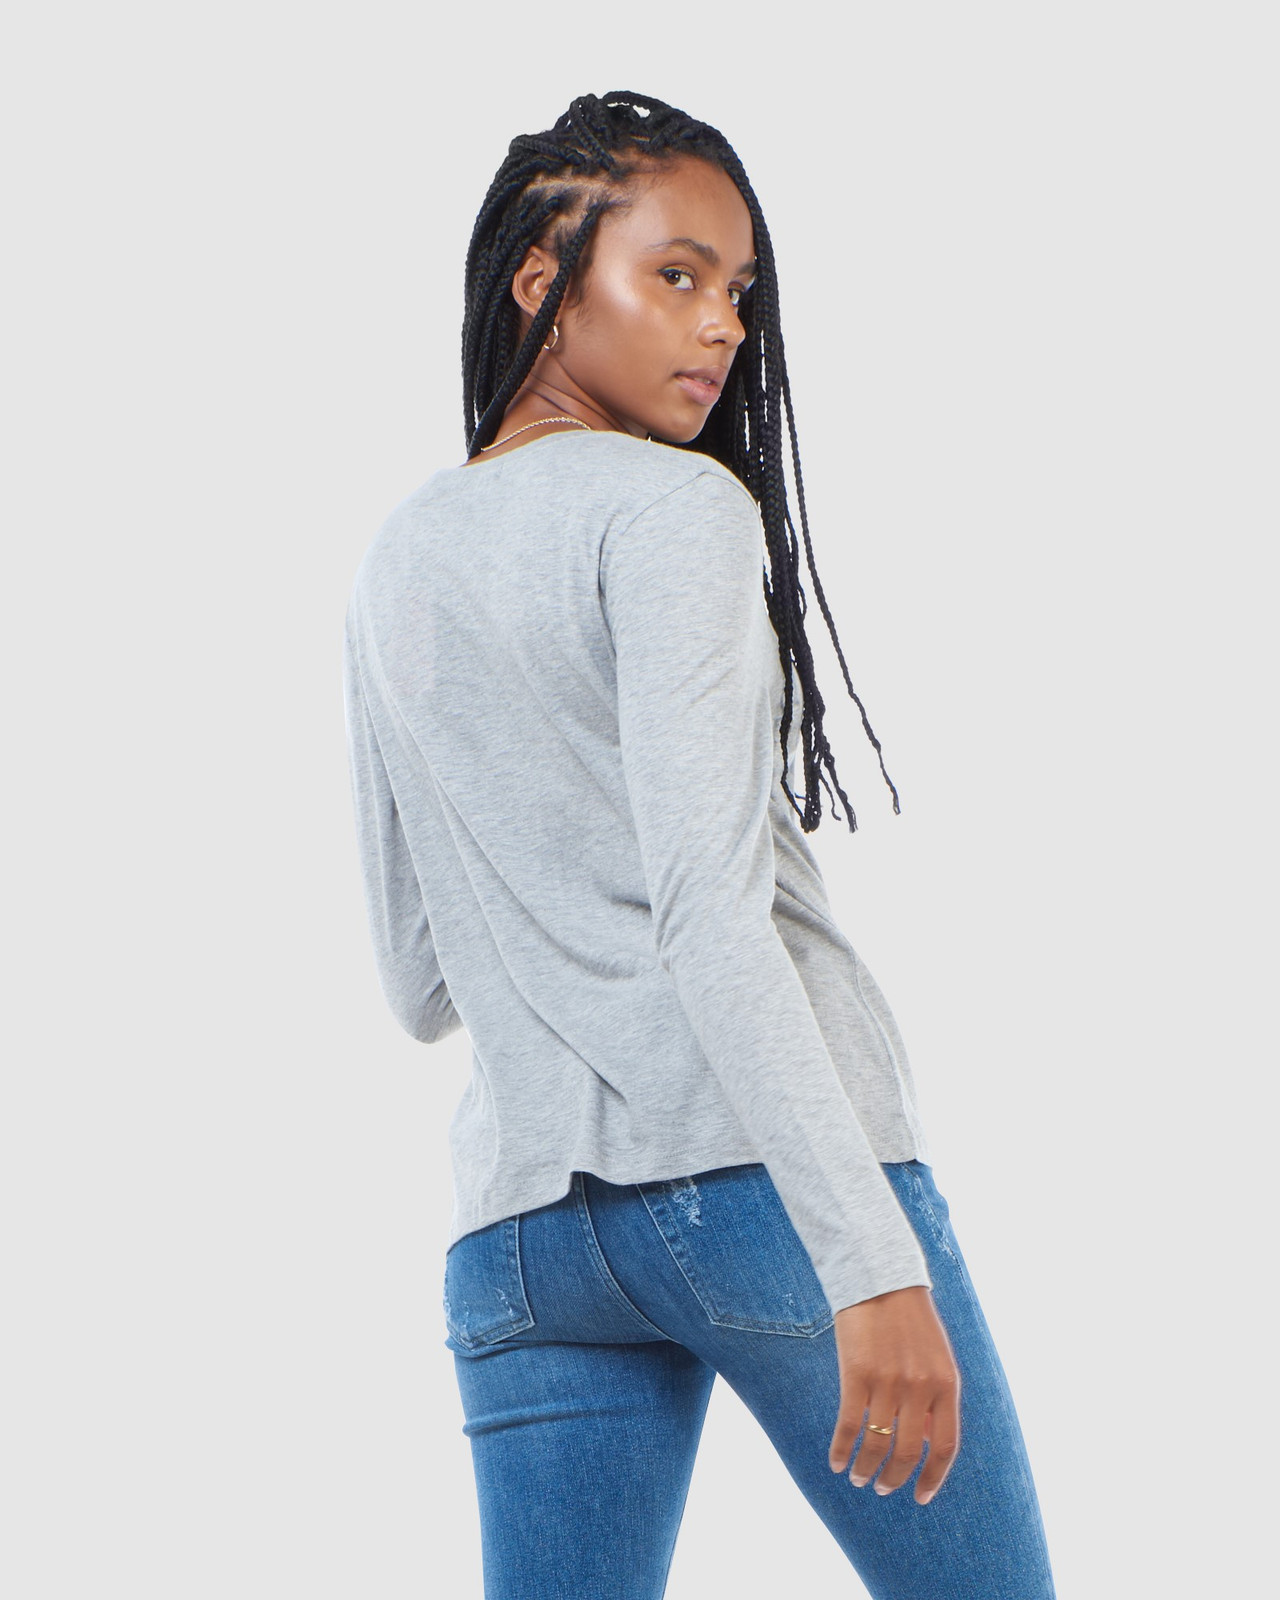 Superdry Womens SCRIPTED L/S CREW TOP Grey Long Sleeve Top 5